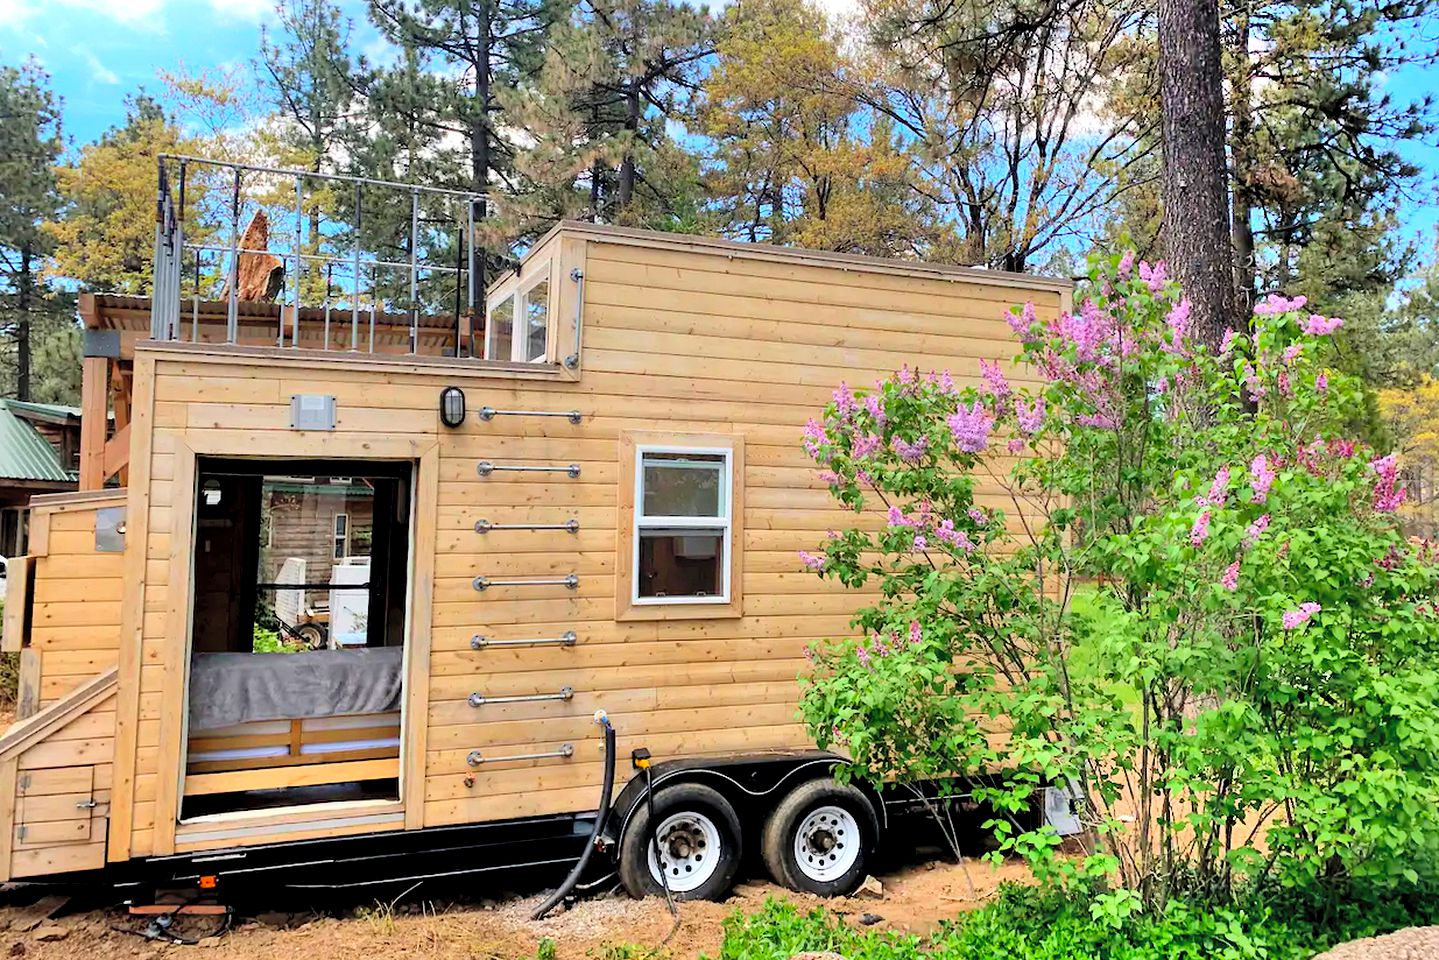 This Mt Laguna tiny house is perfect for weekend getaways near San Diego